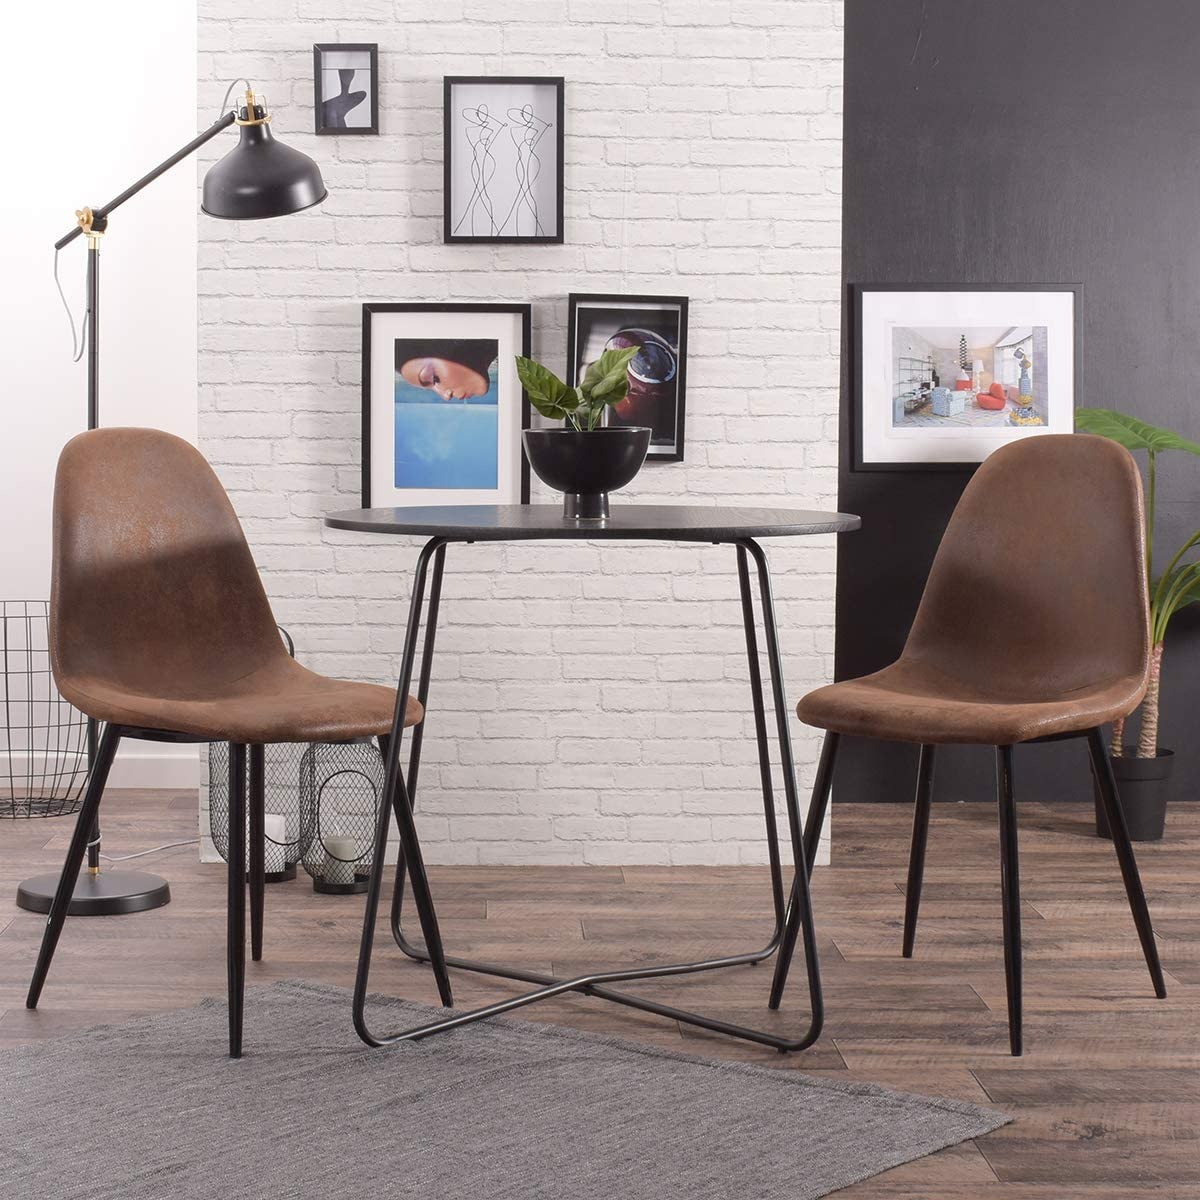 FURNISH1 Set of 4 Vintage Brown Antique Leather Dining Chairs Office chair PU Rustic Cushion Seat Chair with Black Metal Legs